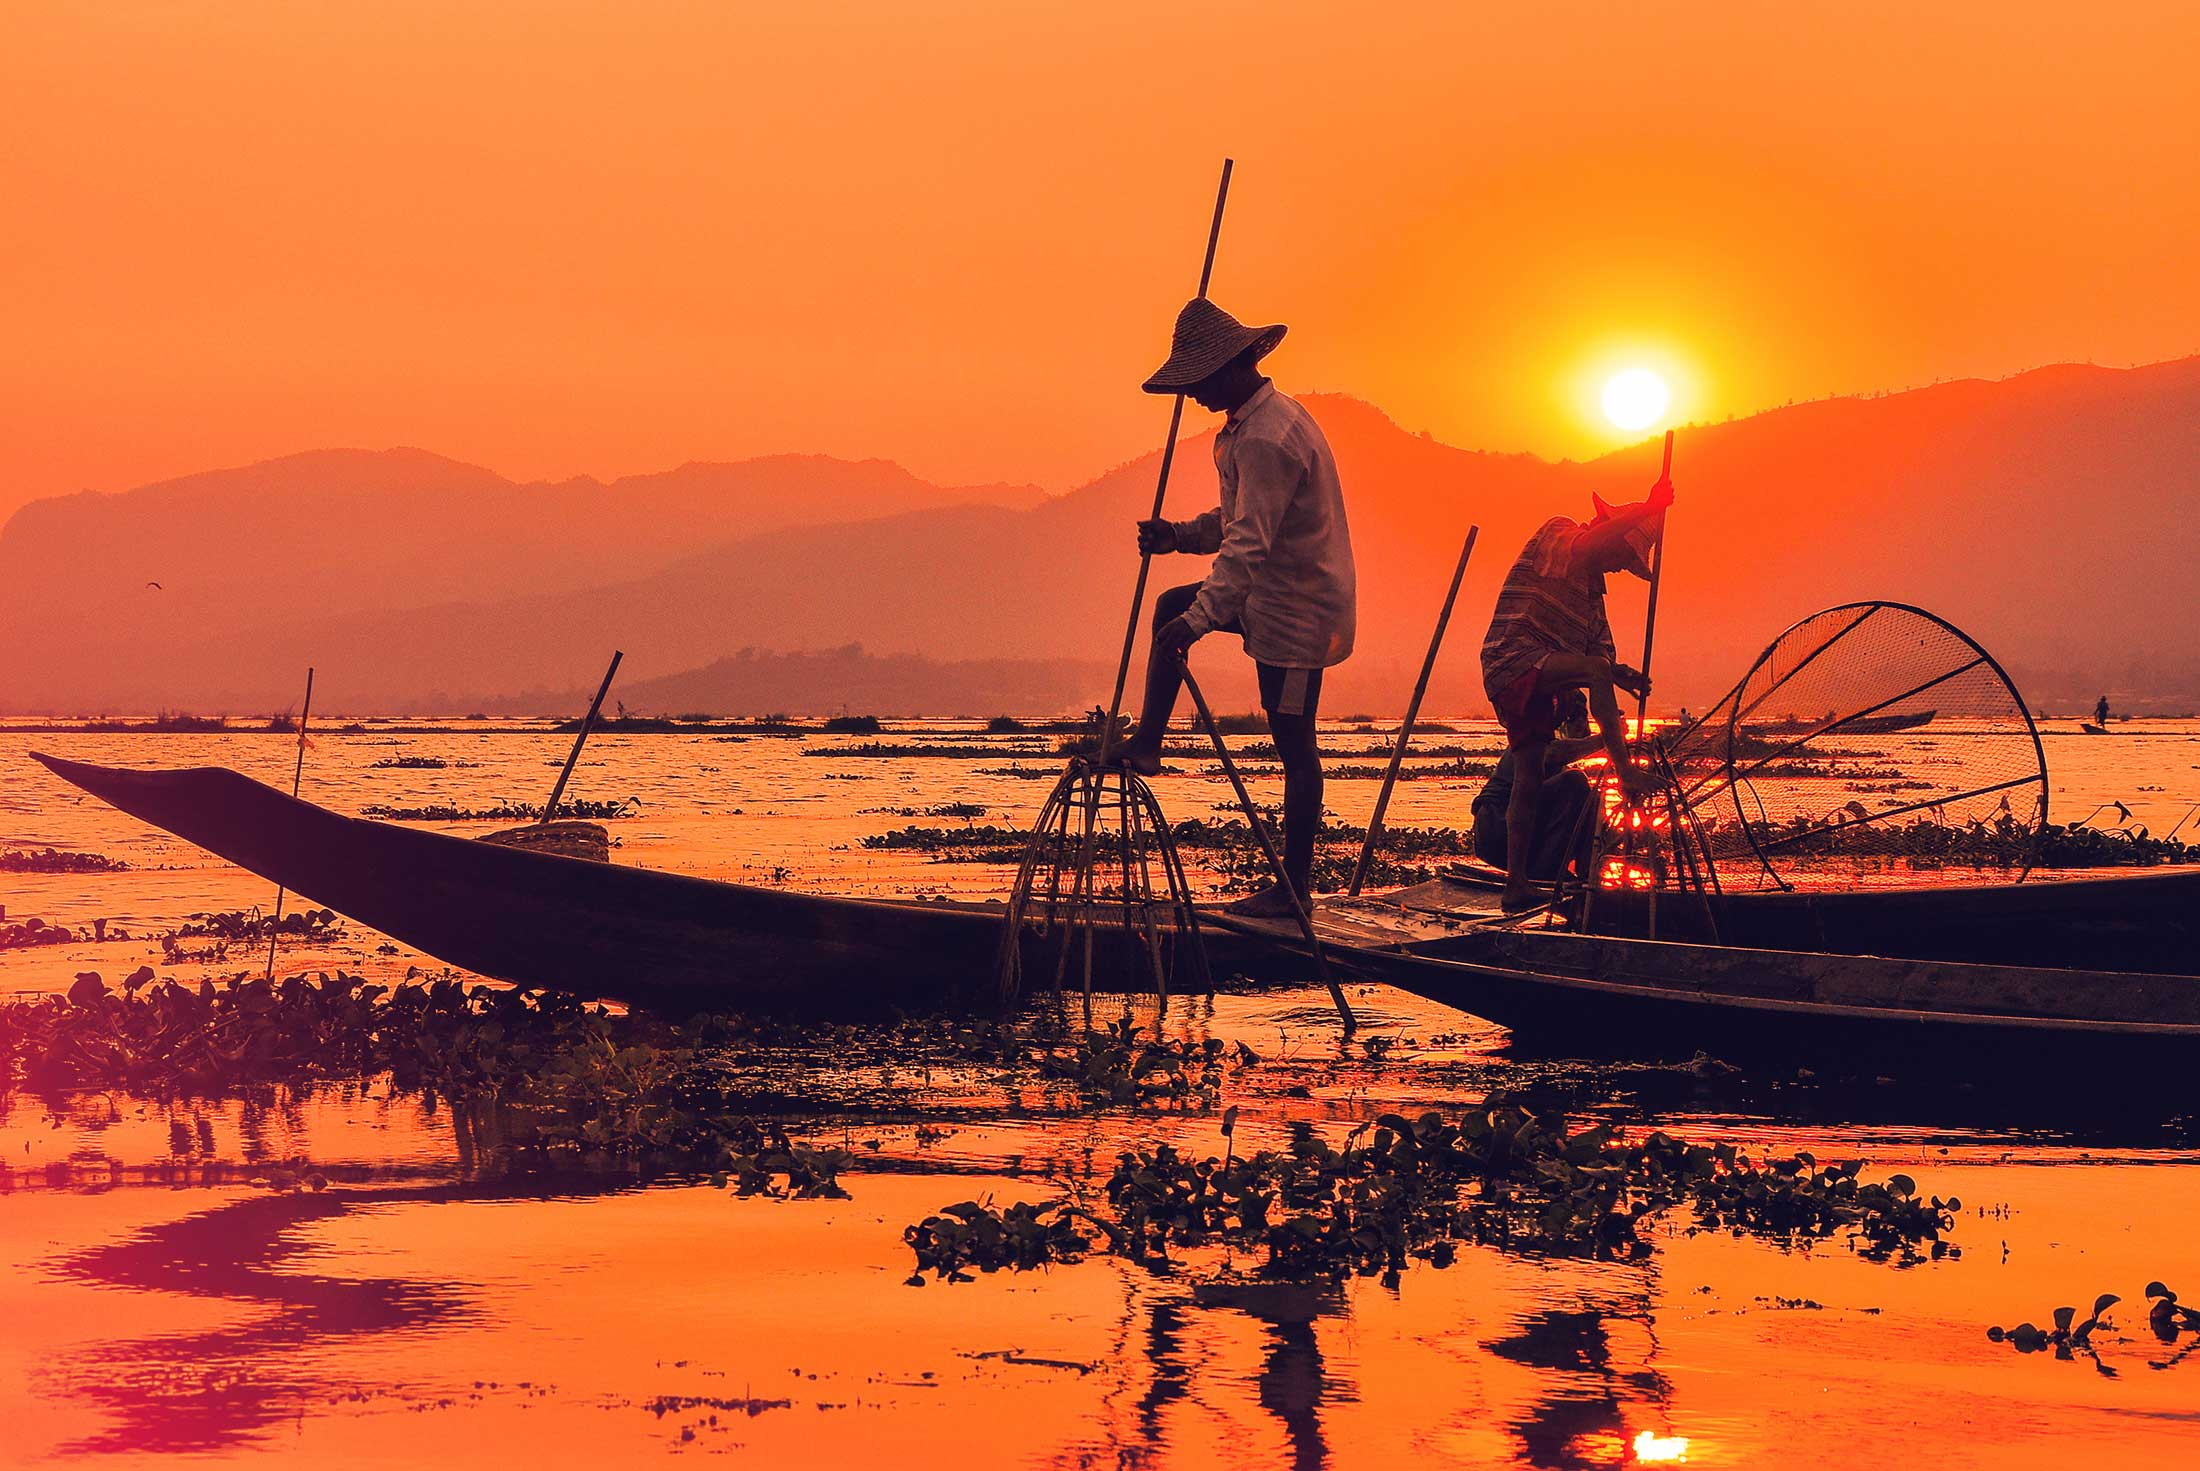 Inthar fishermen go fishing by one leg in the sunrise